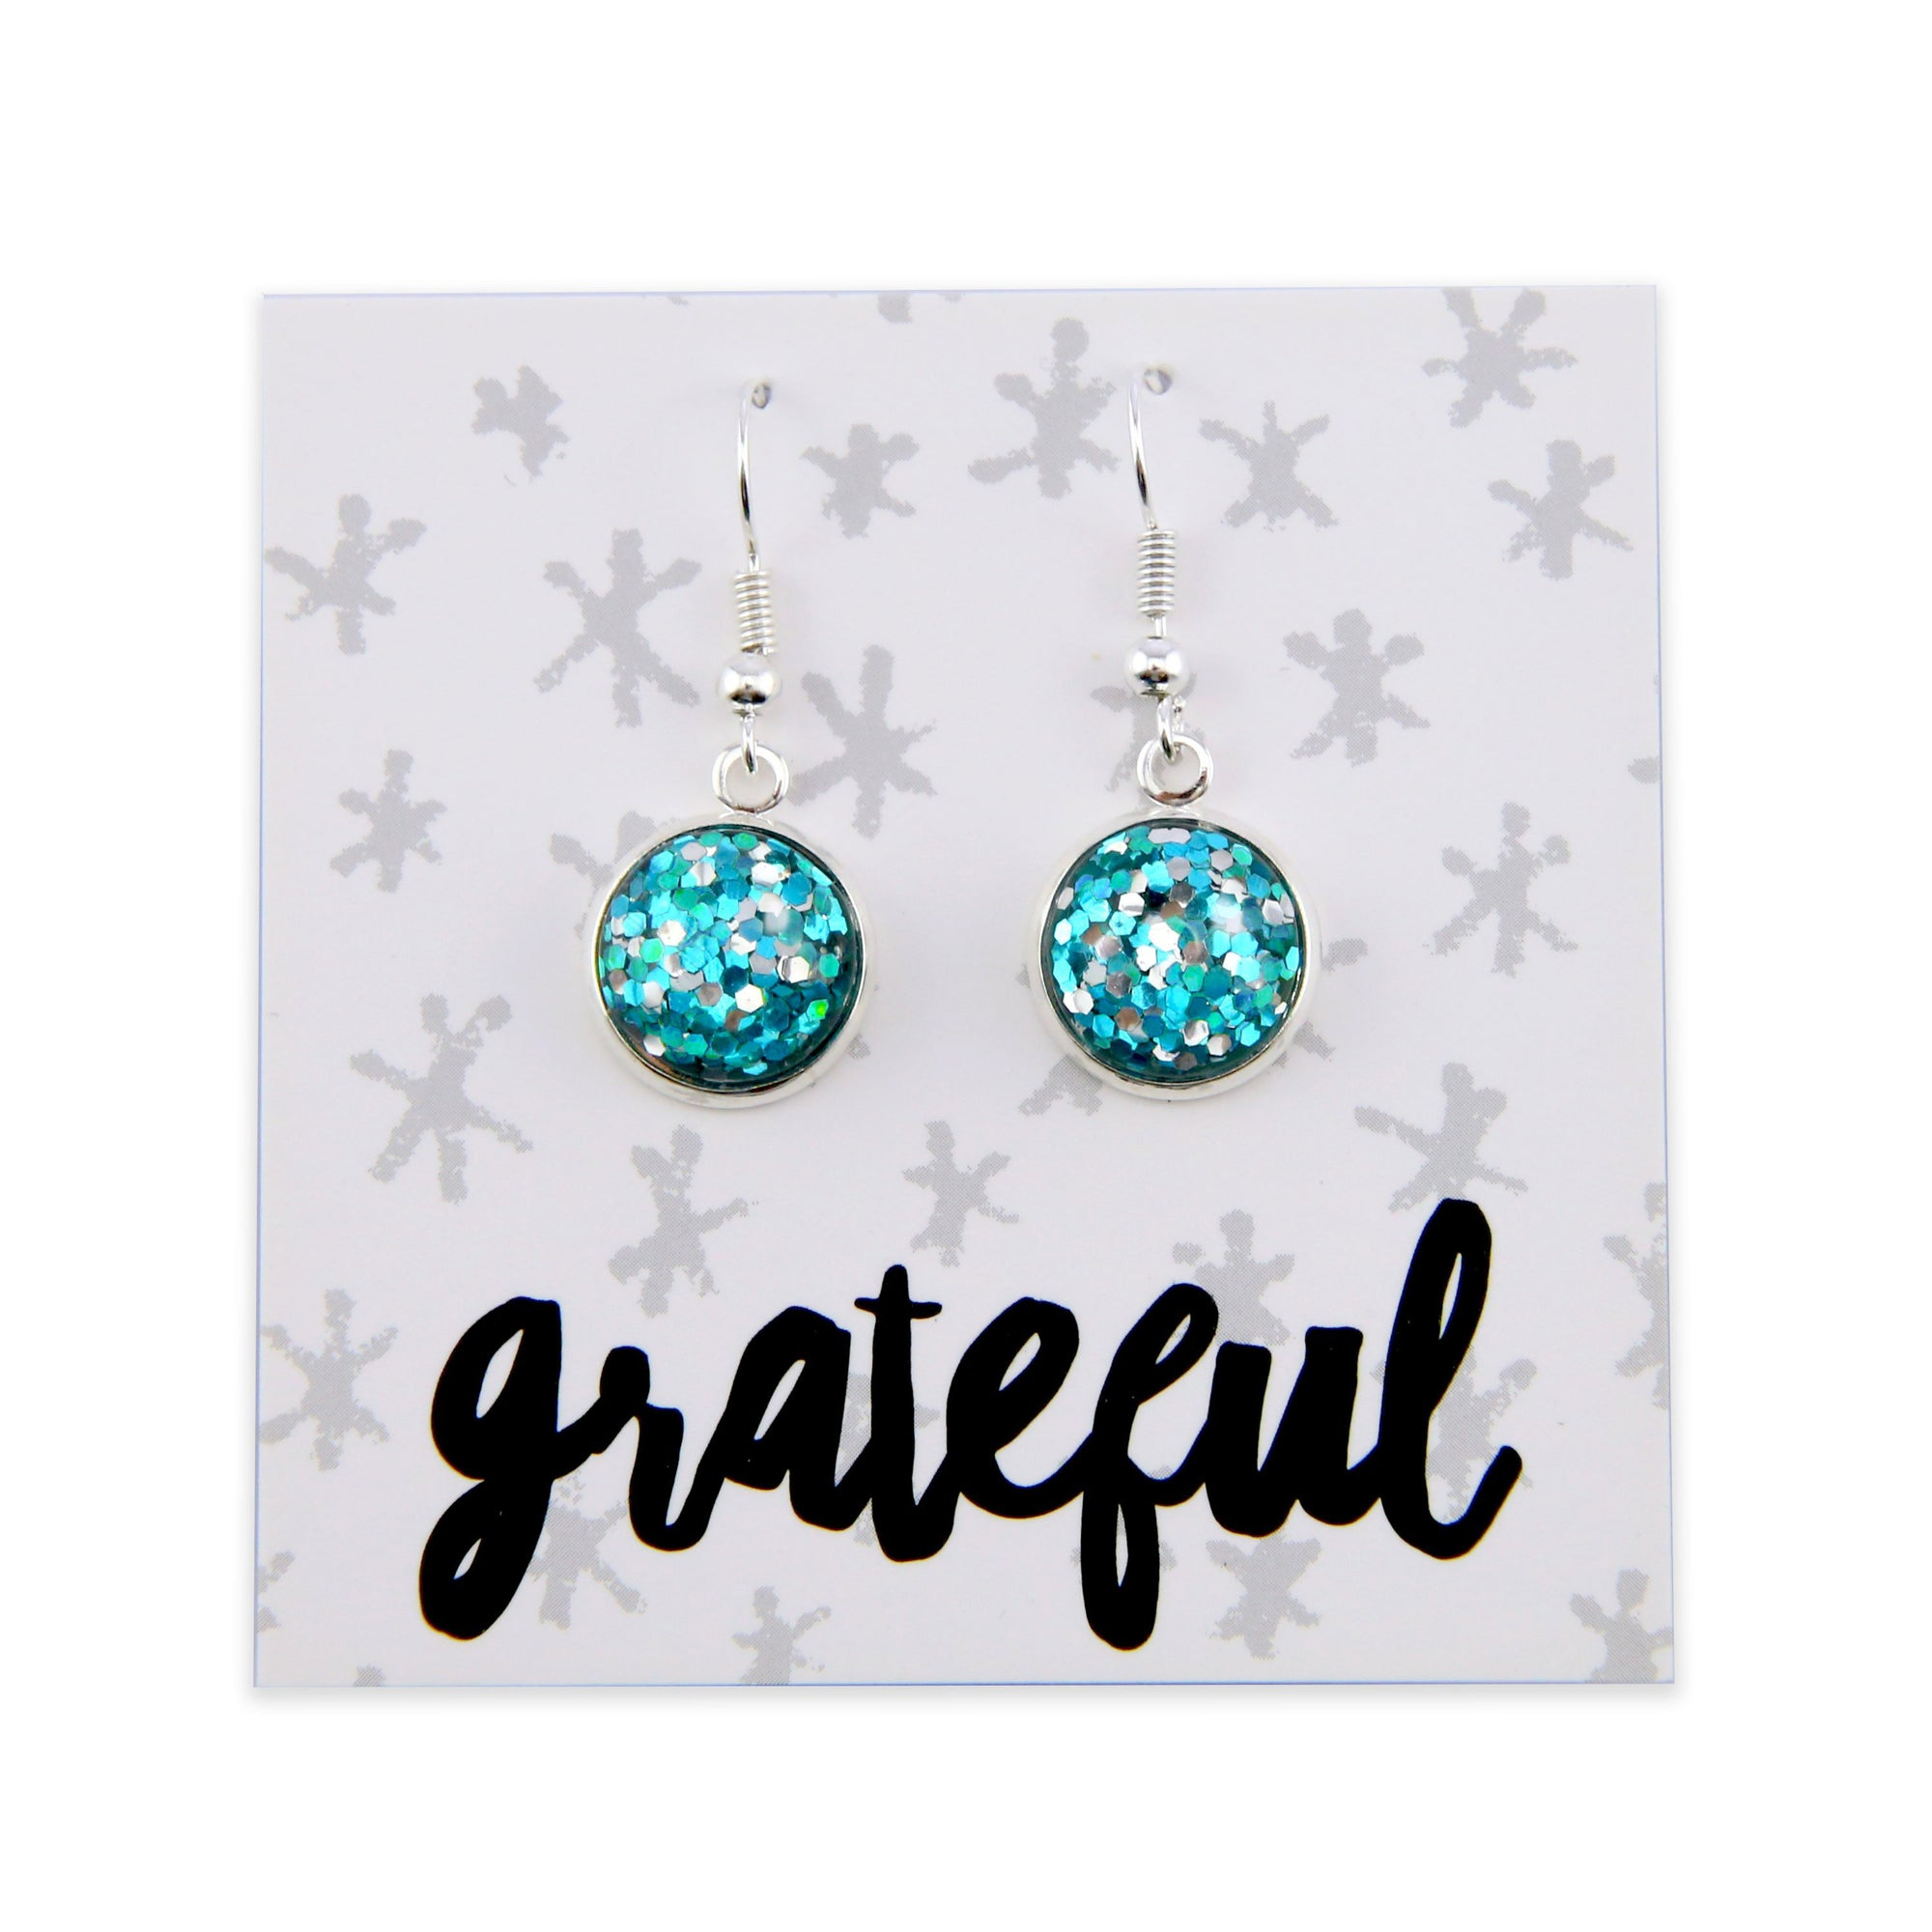 SPARKLEFEST Dangles - Grateful - Stainless Steel Bright Silver Earrings - Aqua, Silver & Green Glitter (8504-F)